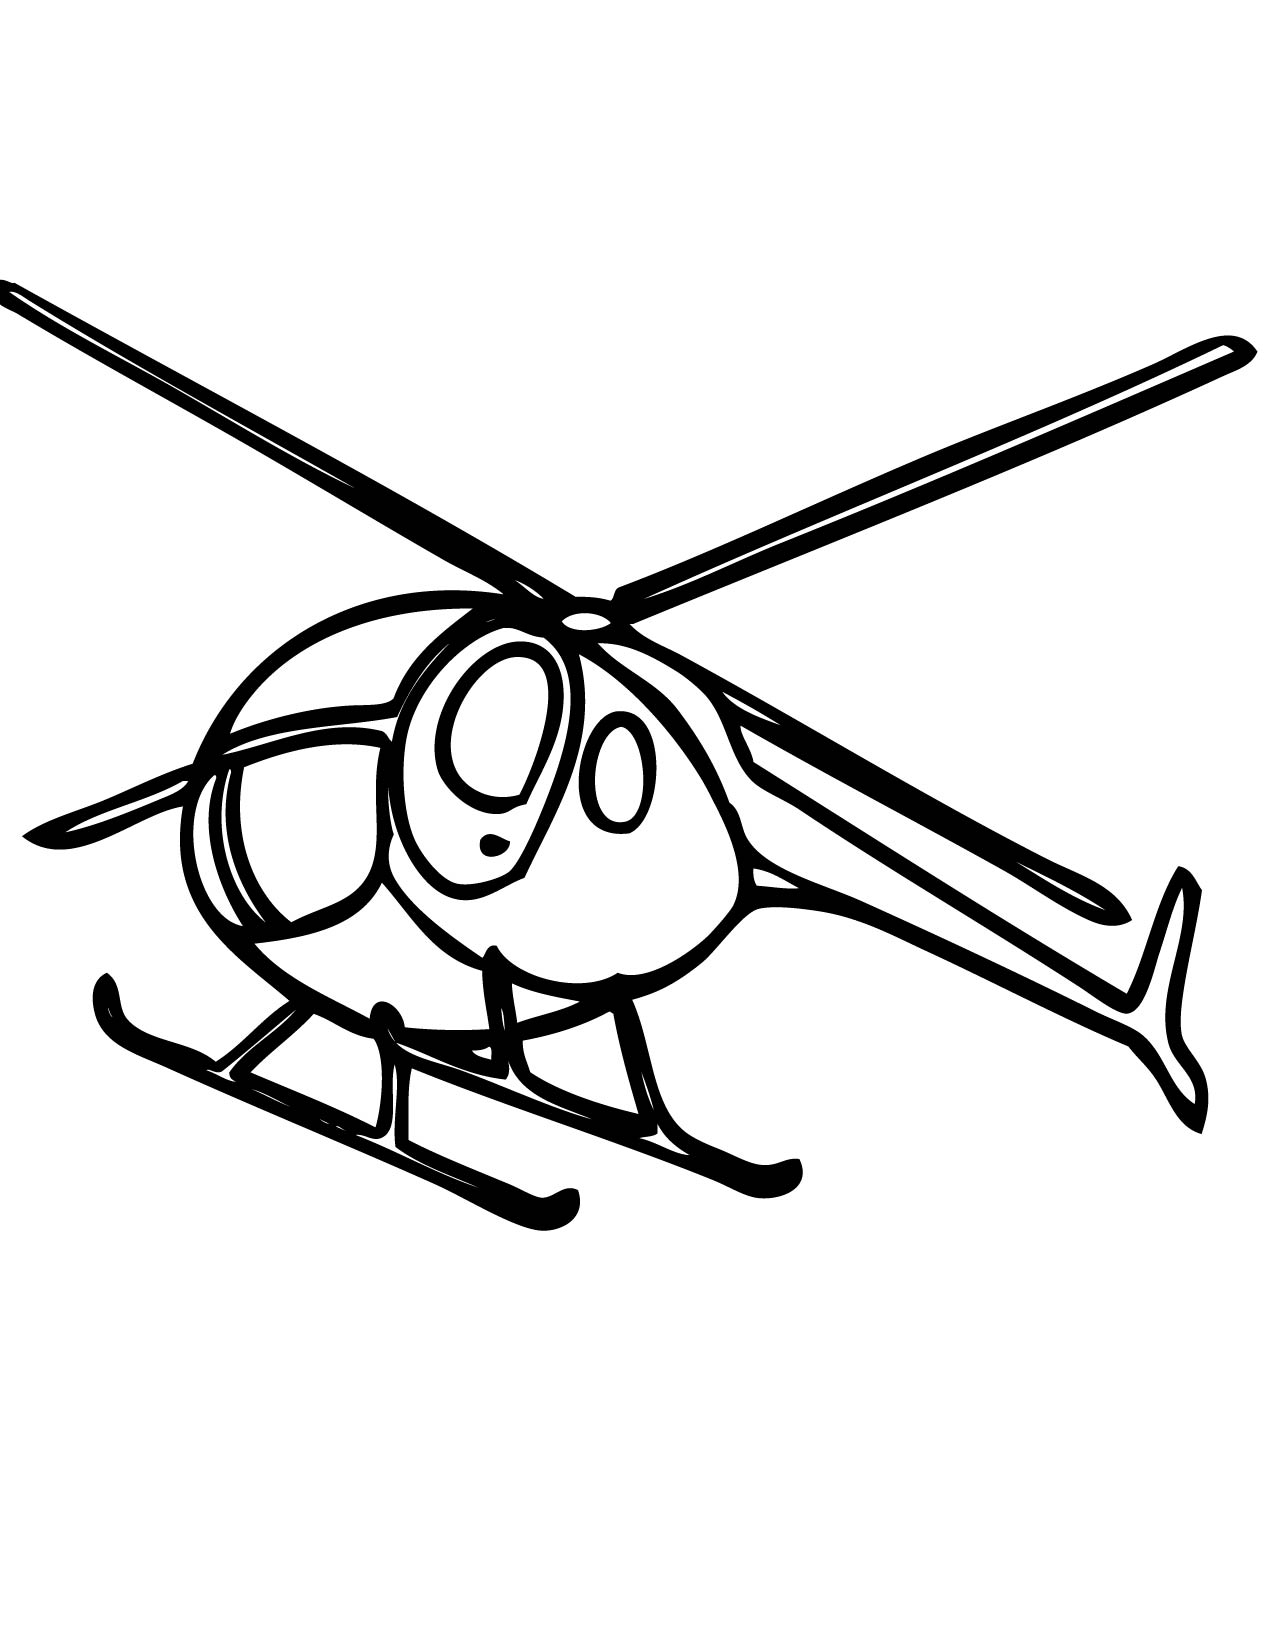 Attack Helicopter coloring #14, Download drawings